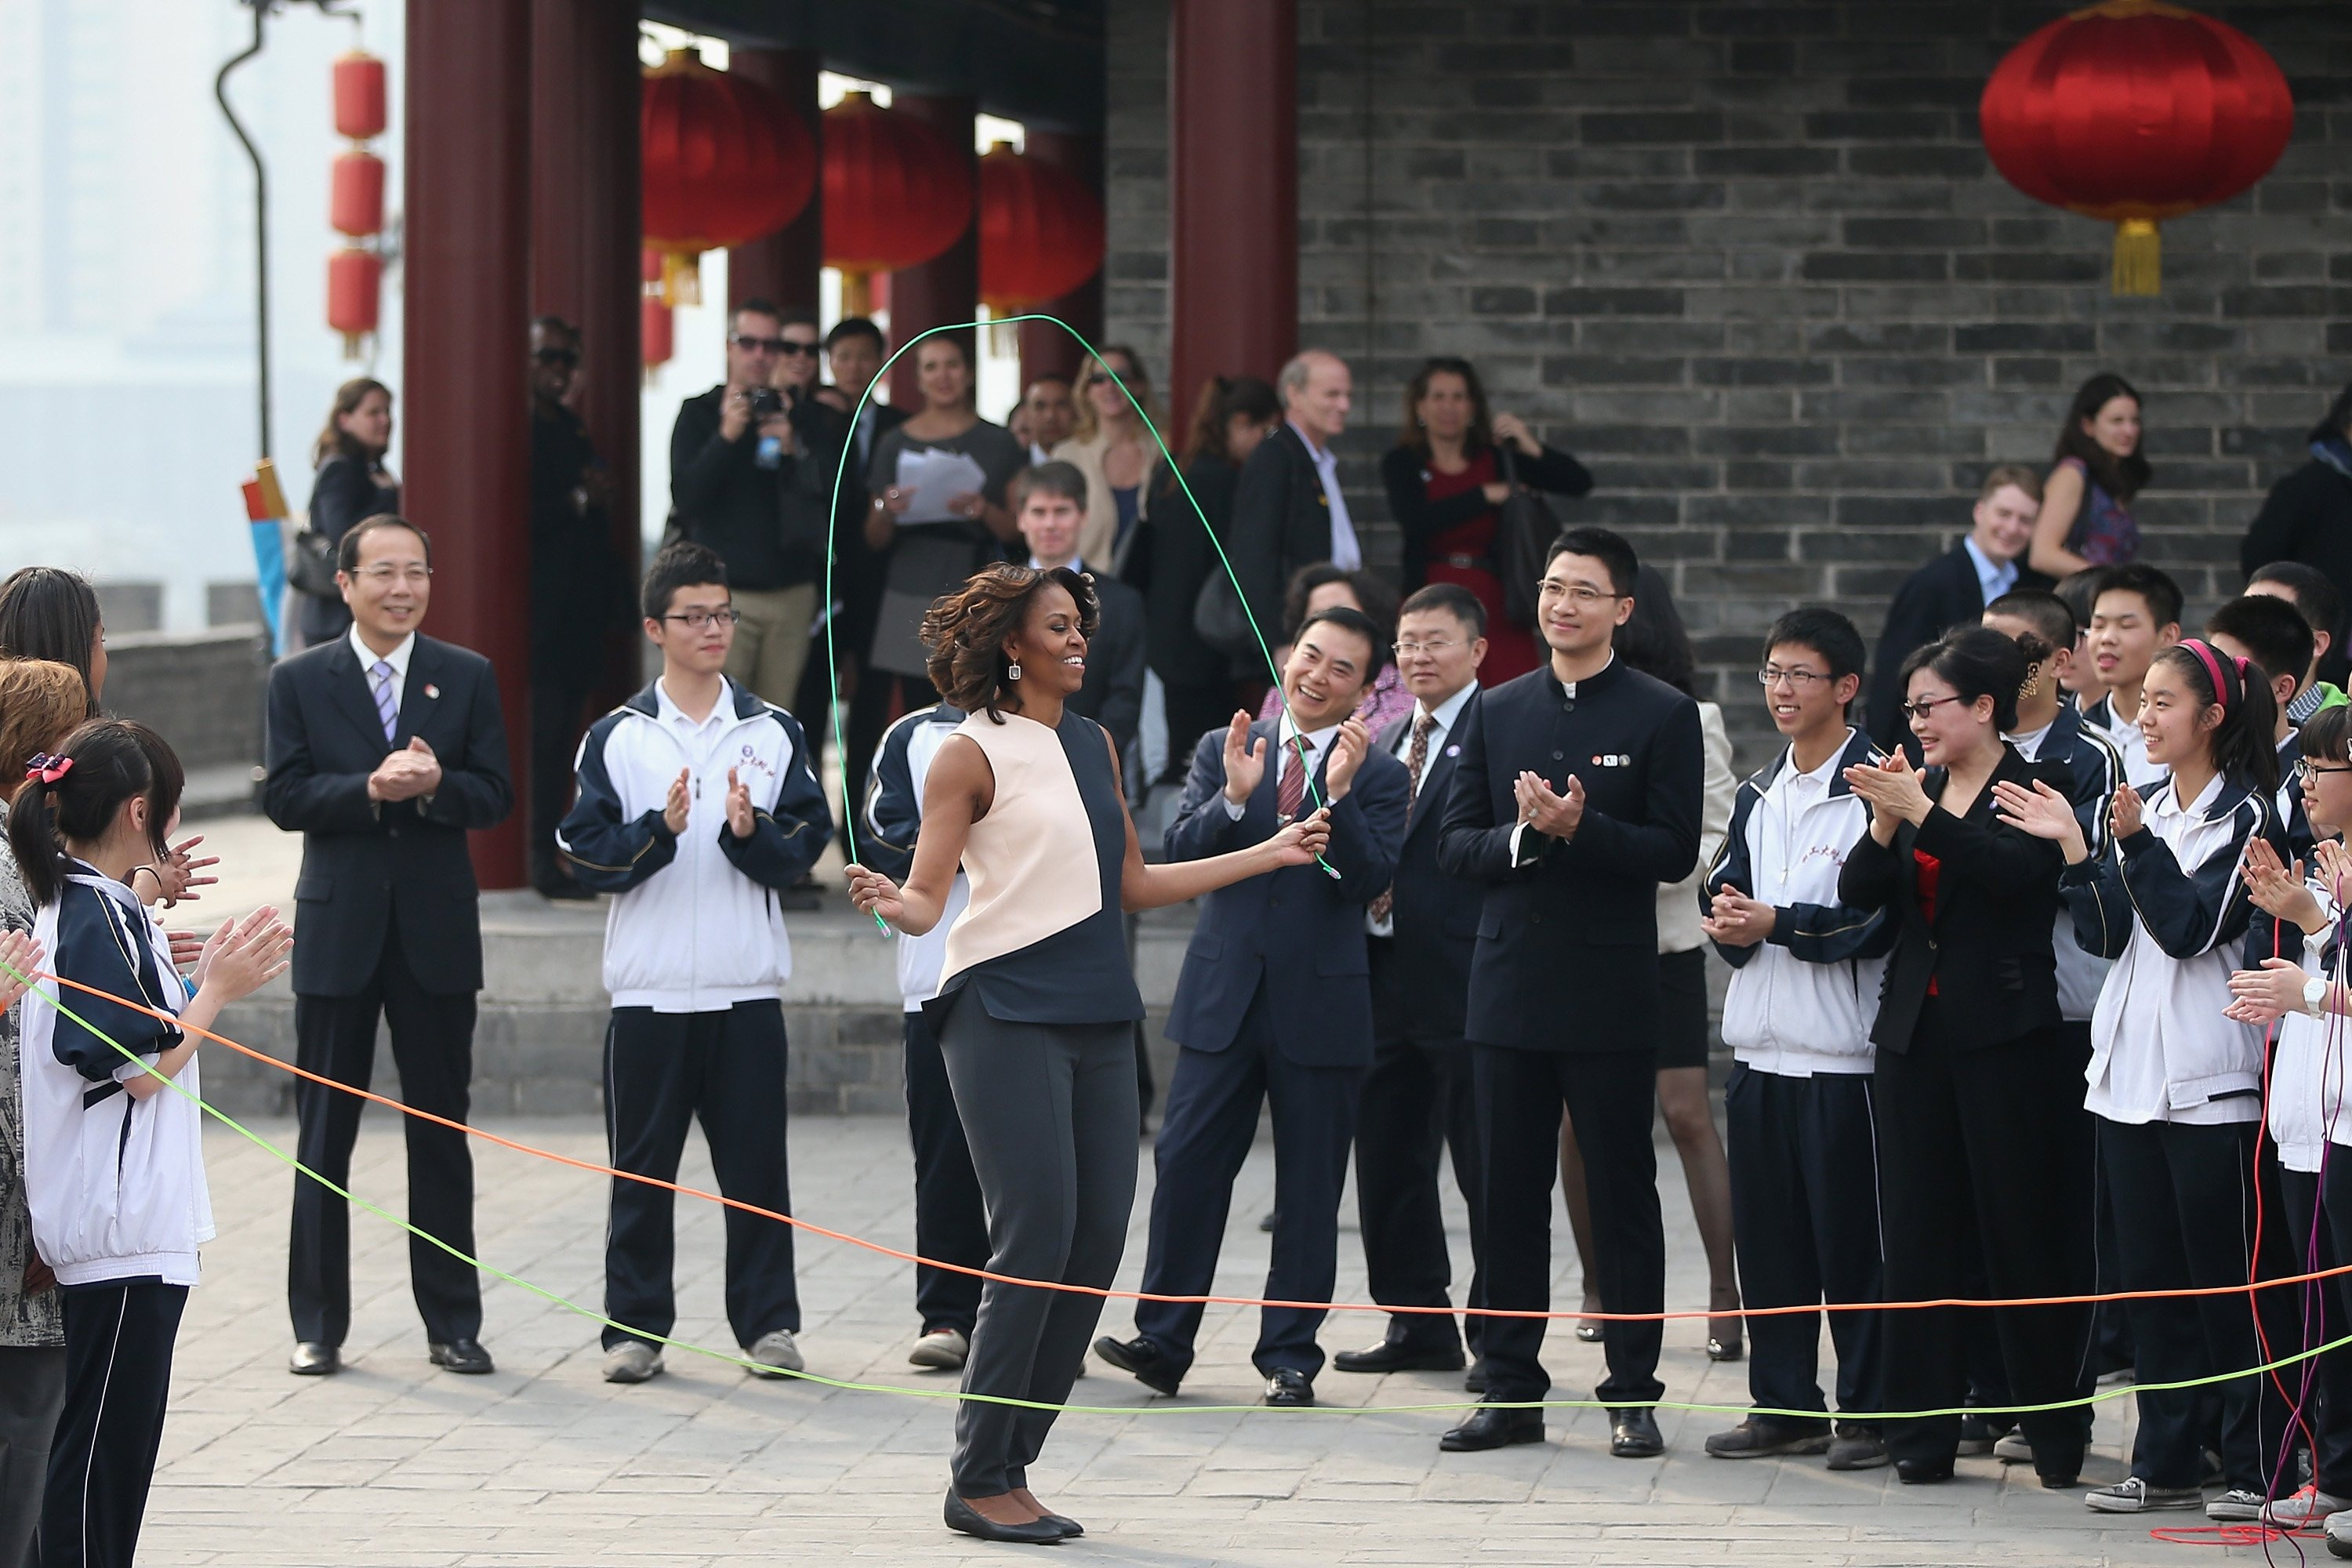 First Lady Michelle Obama jumps rope with Chinese schoolchildren during her visit to the Xi'an City Wall on March 24, 2014 in Xi'an, China.